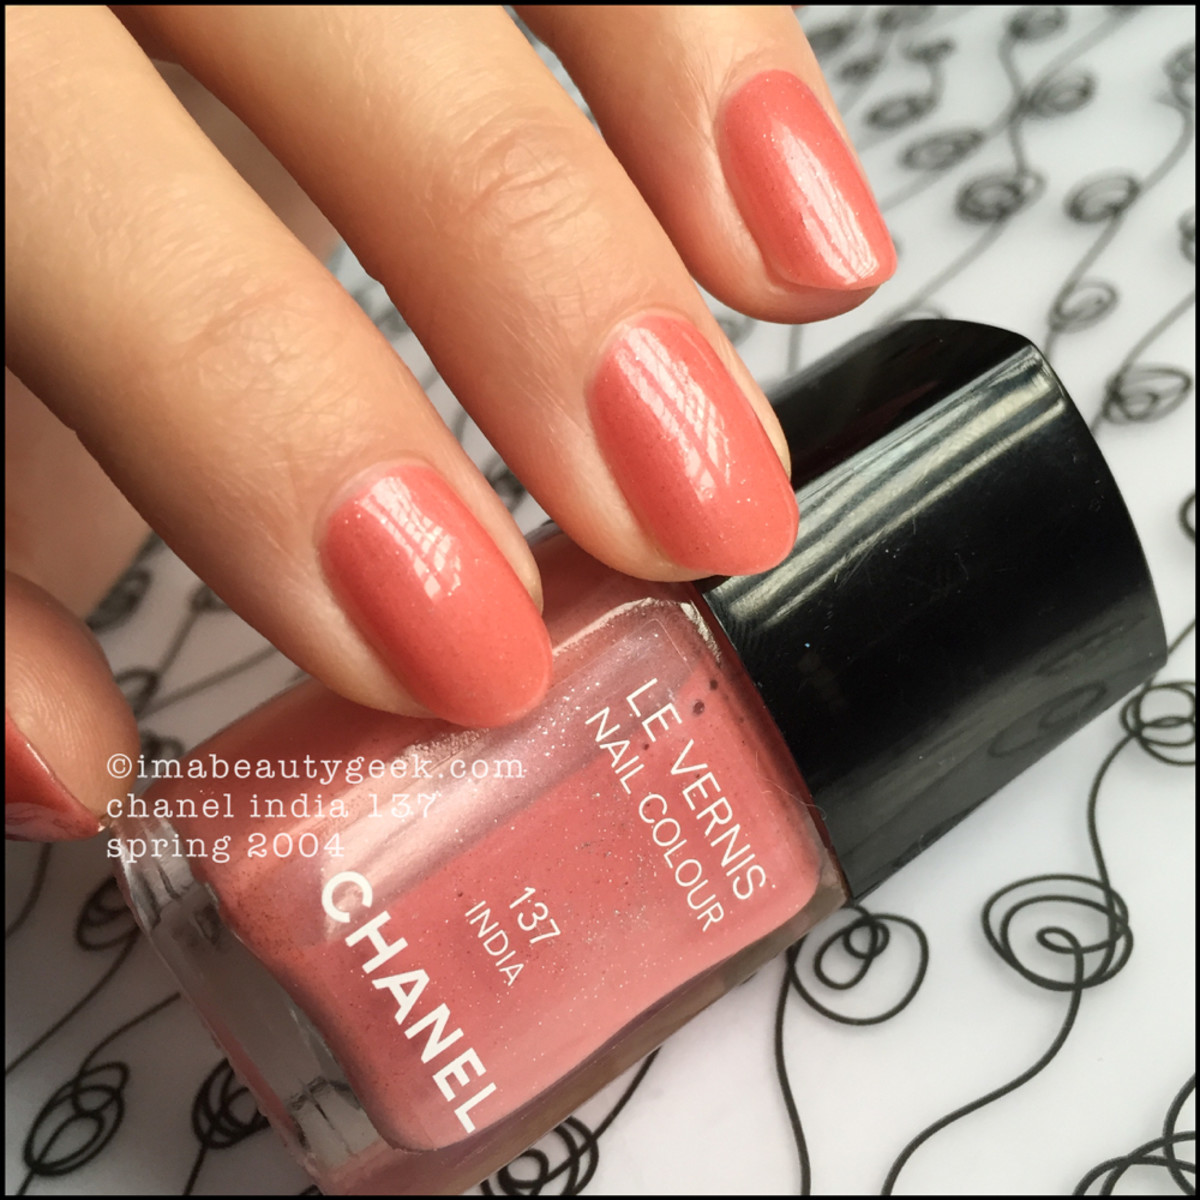 Chanel India 137 Nail Polish Le Vernis Beautygeeks